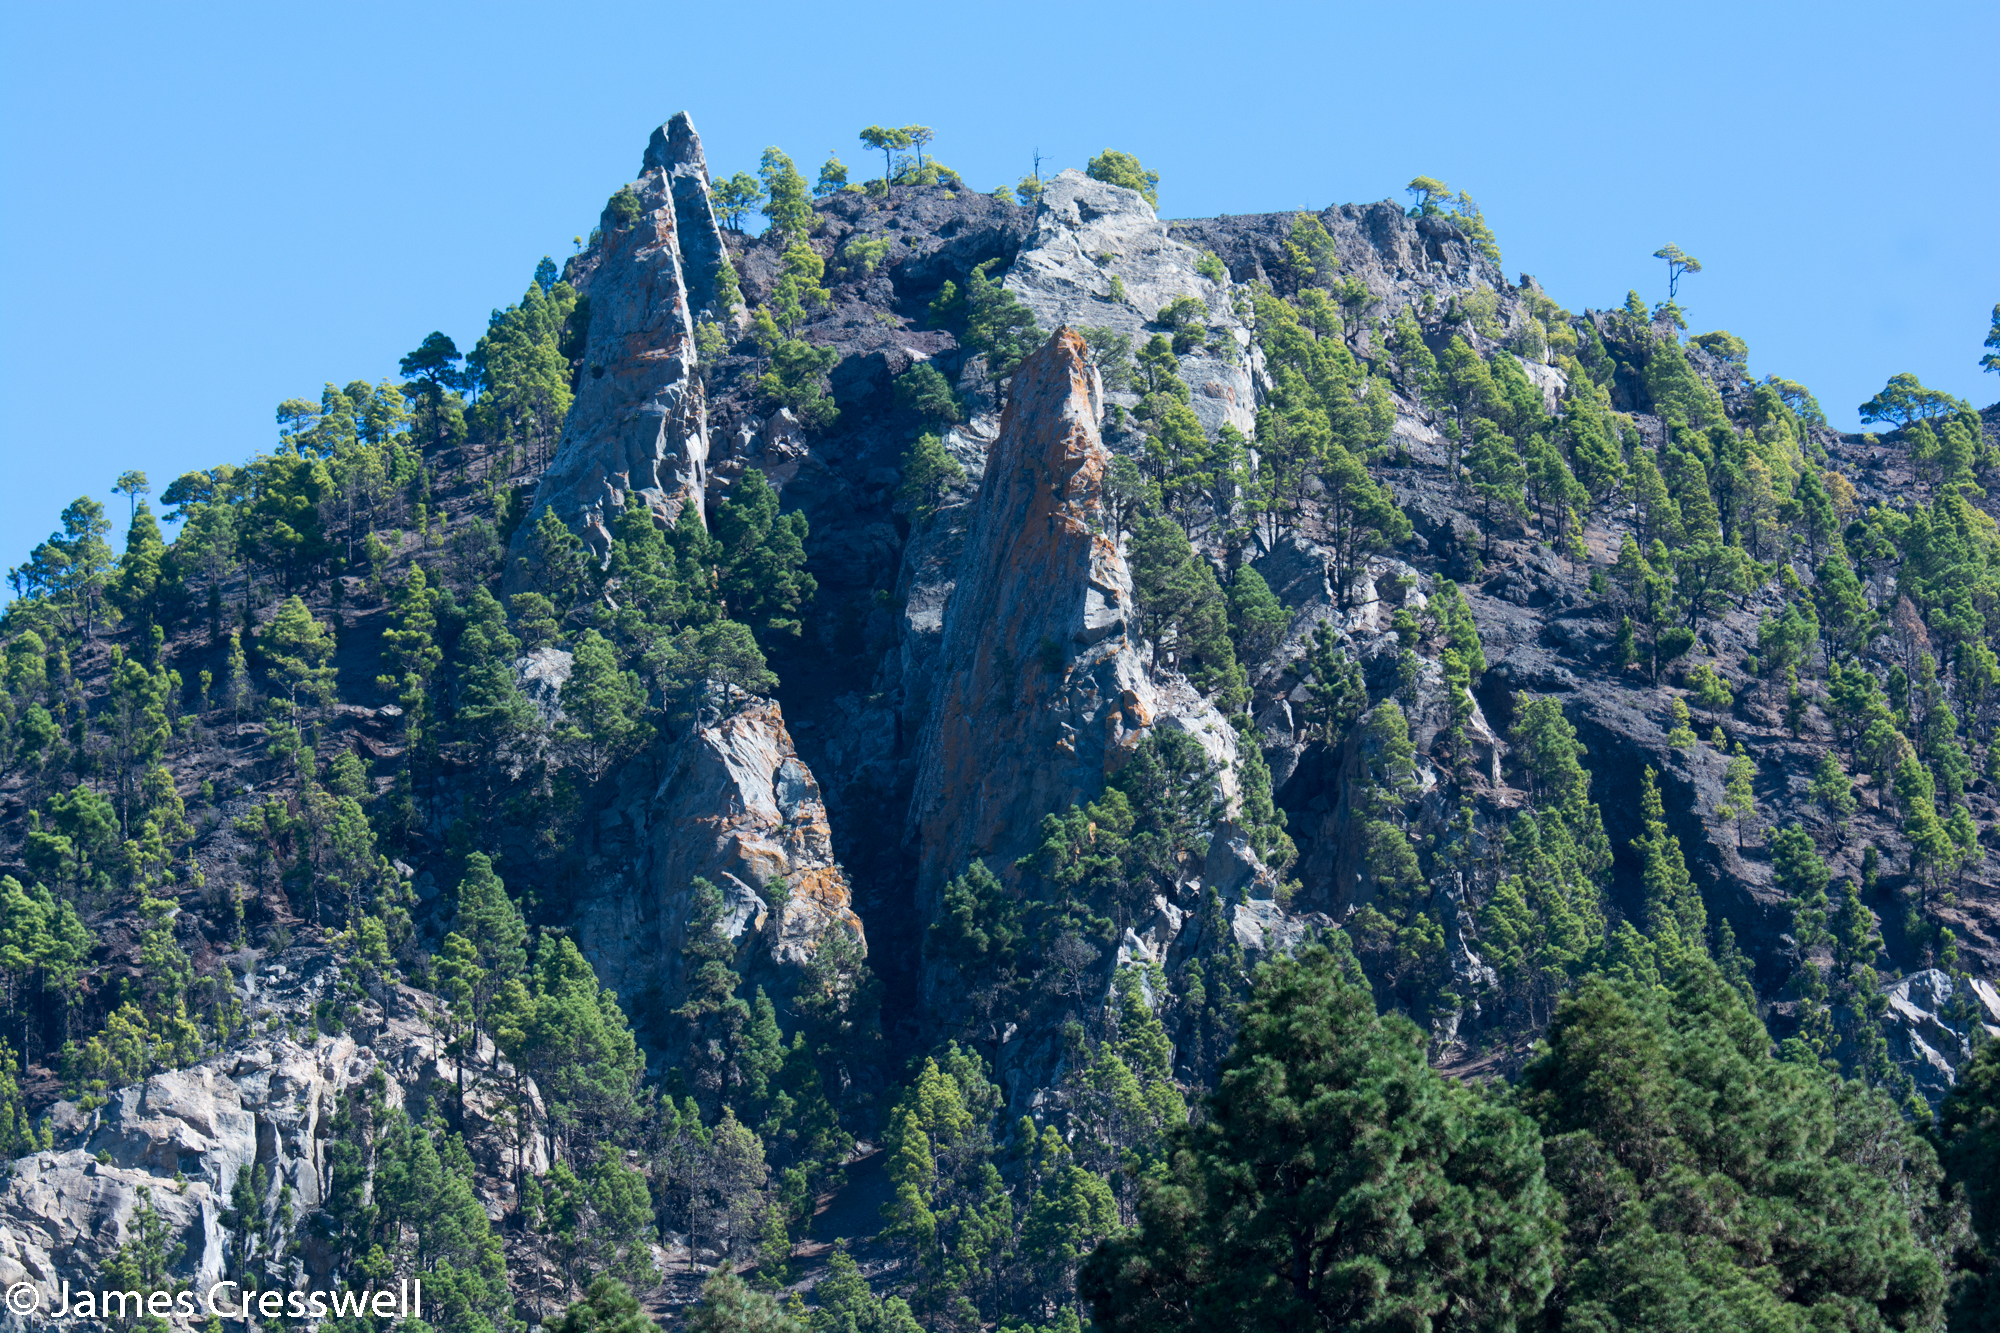 Trees on a rocky outcrop